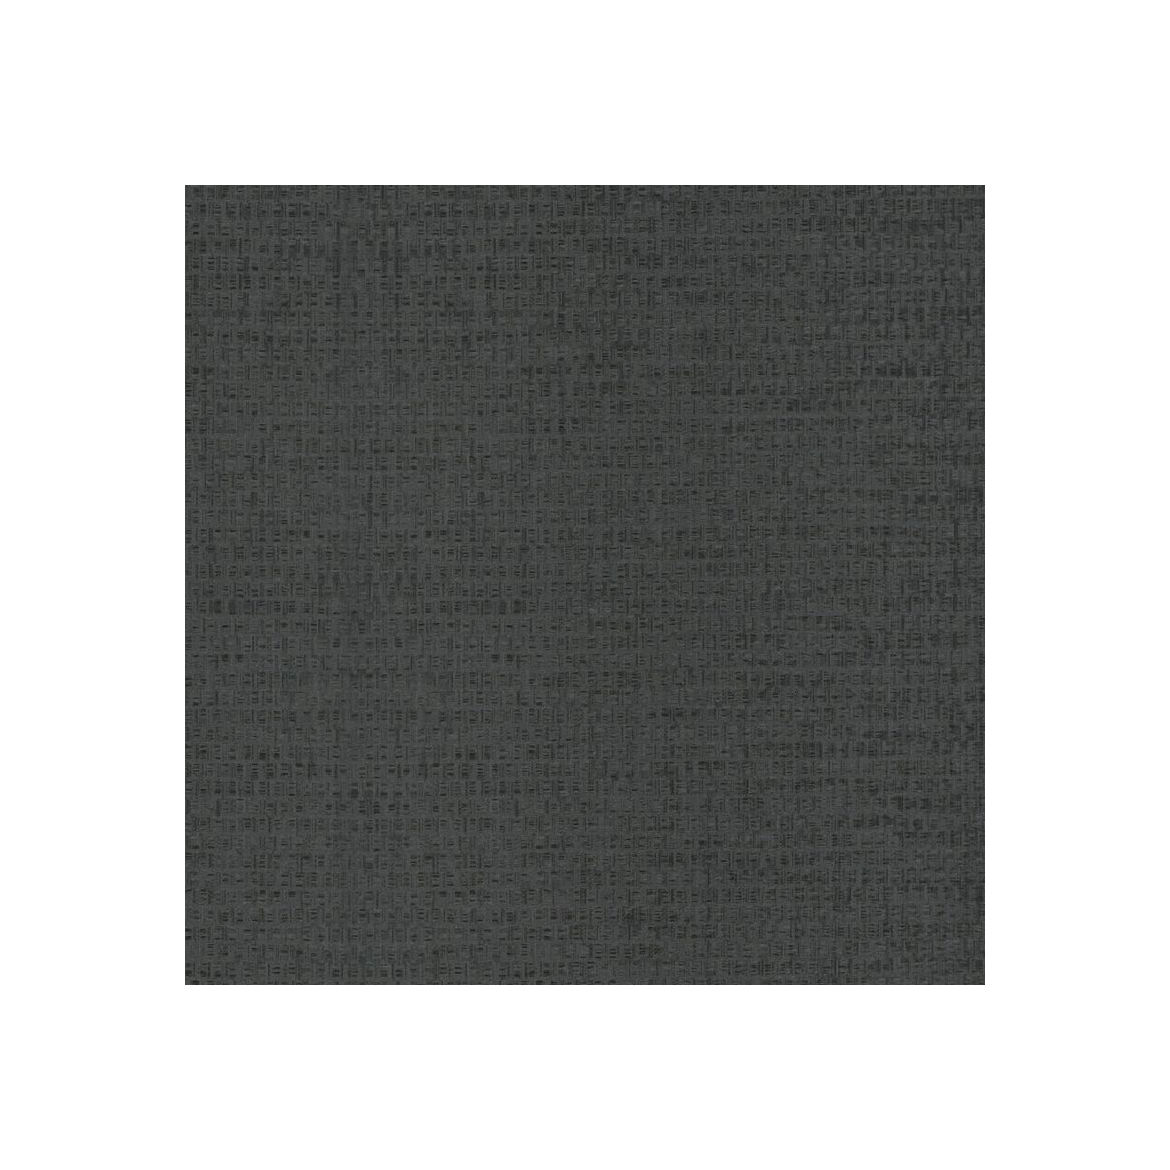 https://cerdesign.pl/3585-large_default/p3822-gardenia-textile-antracite-41x41-14111.jpg